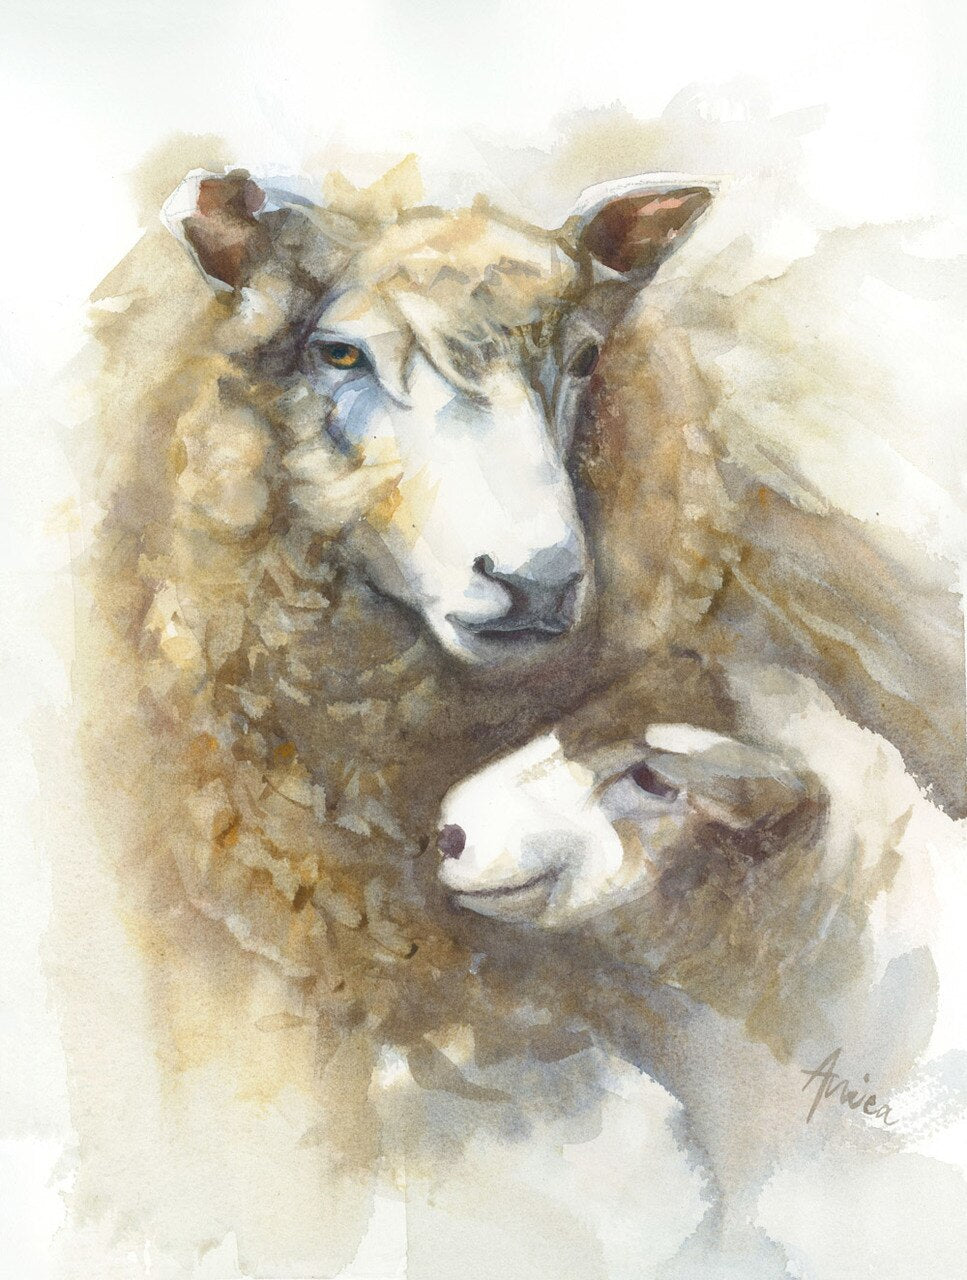 watercolour sheep painting of mother ewe and baby lamb